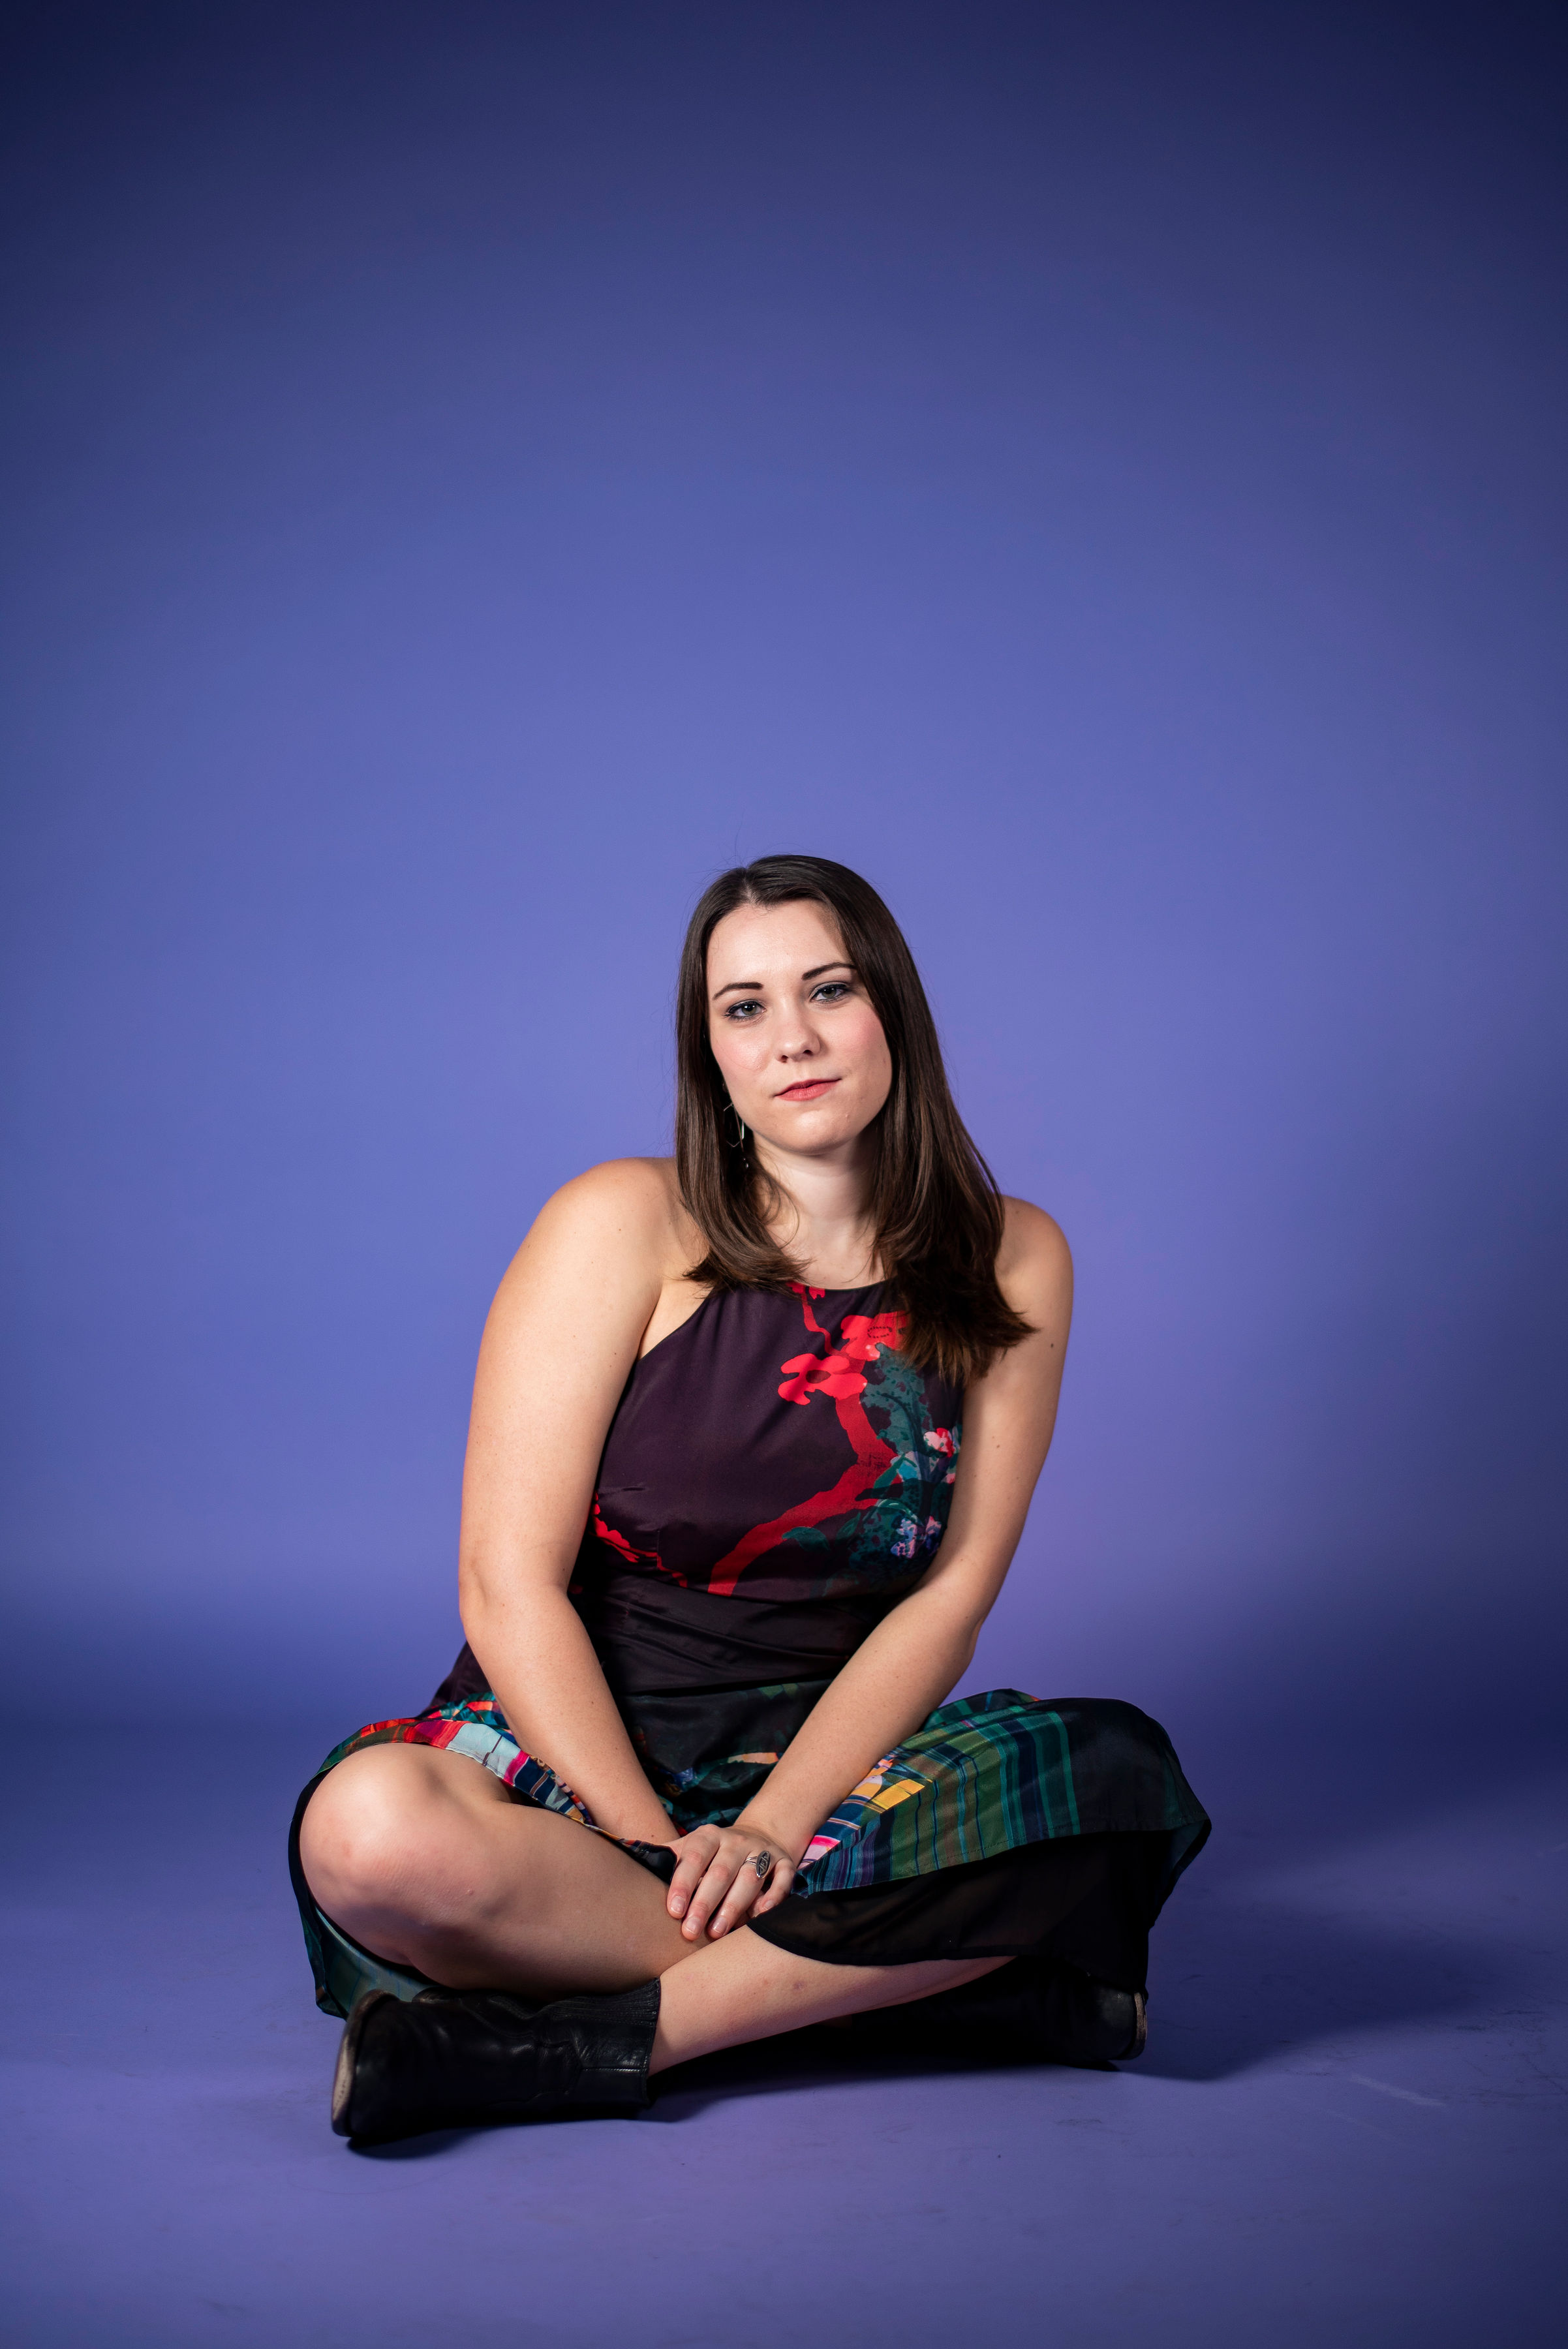 Lindsey Chinn - Soprano Lindsey Chinn, a Tennessee native, is a dynamic and well informed performer and a soon-to-be graduate of the Mannes School of Music. Her upcoming engagements include Pierrot Lunaire with the Mannes American Comporsers Ensemble and Anna Maurrant in Street Scene with Mannes Opera. In summer 2019, Lindsey will be joining the Chautauqua Opera Company for their 90th anniversary season.Past engagements include Countess Ceprano in Rigoletto with Lighthouse Opera, Galatea in Acis and Galatea and Soprano 1 in Hydrogen Jukebox with Carnegie Mellon Opera. In summer 2017, Lindsey was a young artist at IVAI in New York. She's also attended AIMS in Graz and the Savannah Voice Festival. Lindsey will graduate in the spring with her MM from Mannes School of Music. She holds a BFA from Carnegie Mellon Univeristy.Lindsey is a student of Beth Roberts and Joshua Greene.